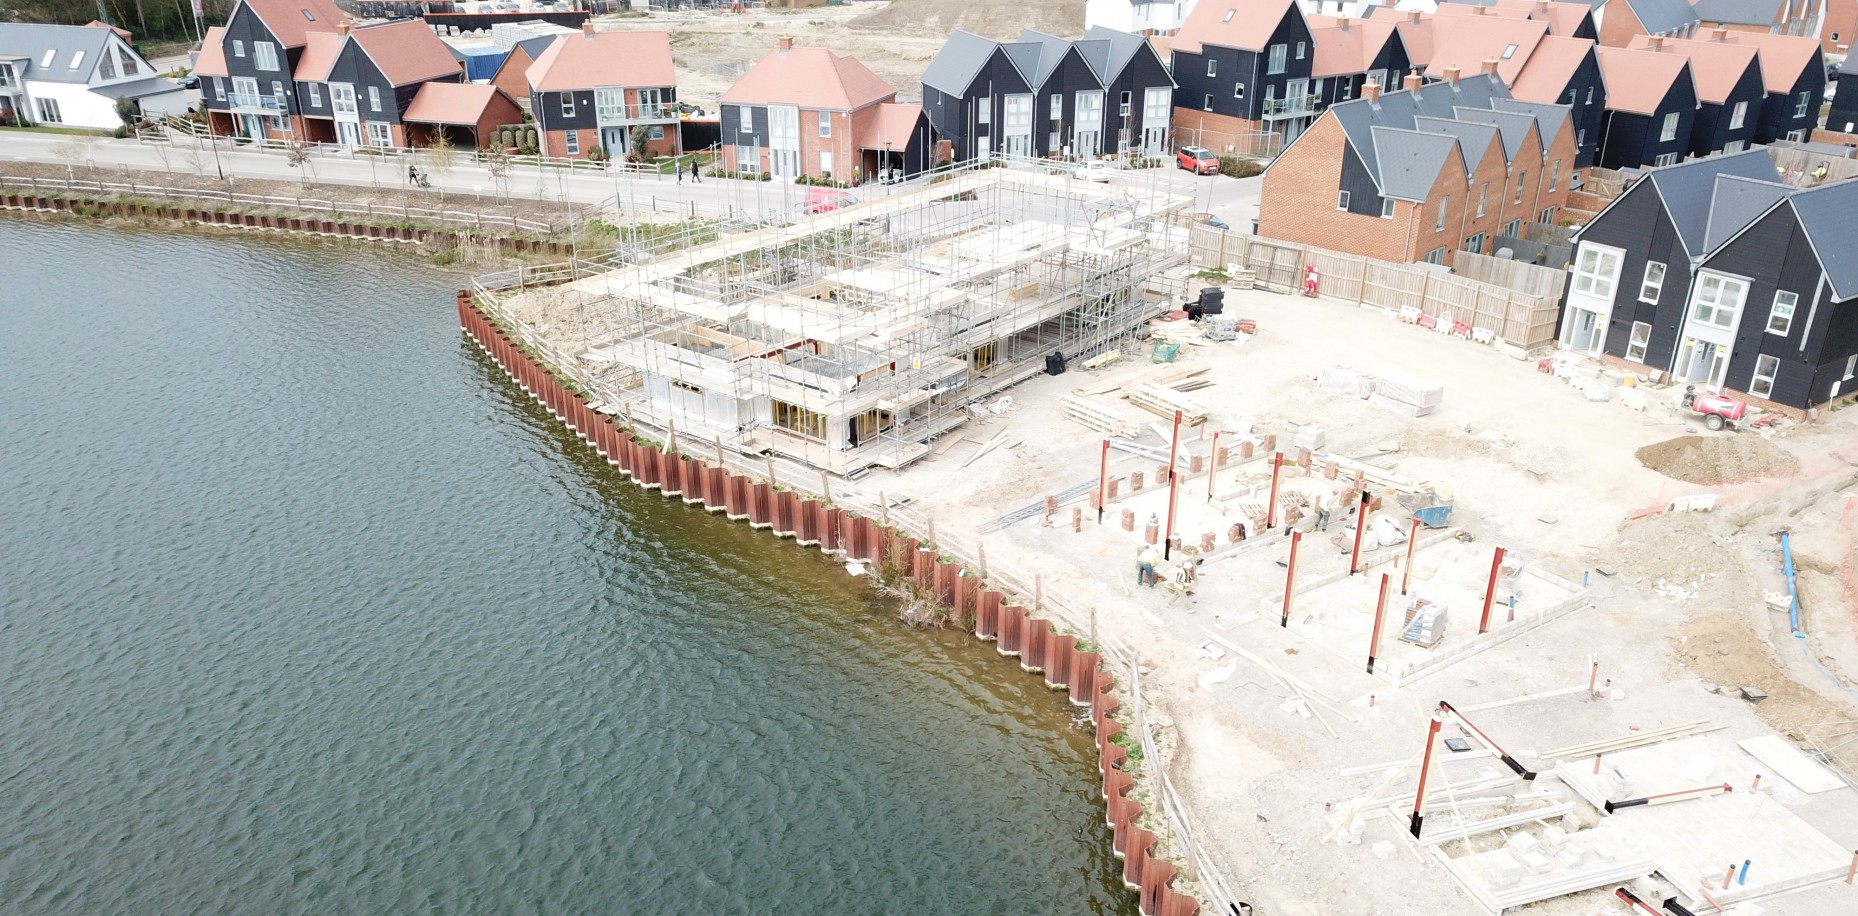 Rising to the challenges of building three story homes beside the lake at Conningbrook lakes